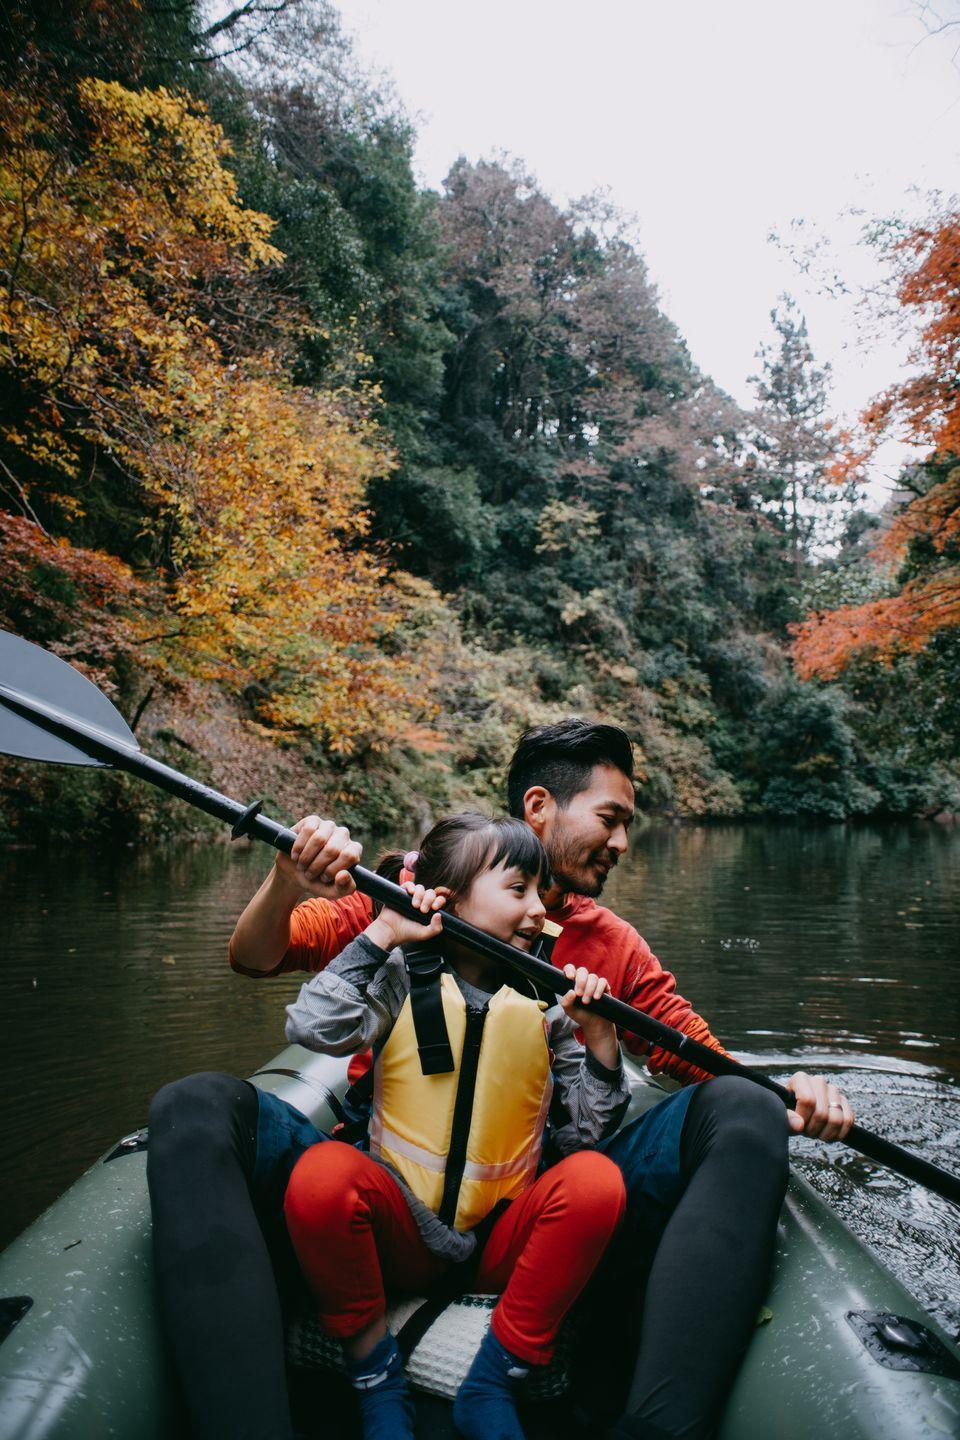 <p>Take your family outside for your staycation. Try a new activity or a family-favorite hobby, such as kayaking or biking to get outside and feel immersed in nature.</p>